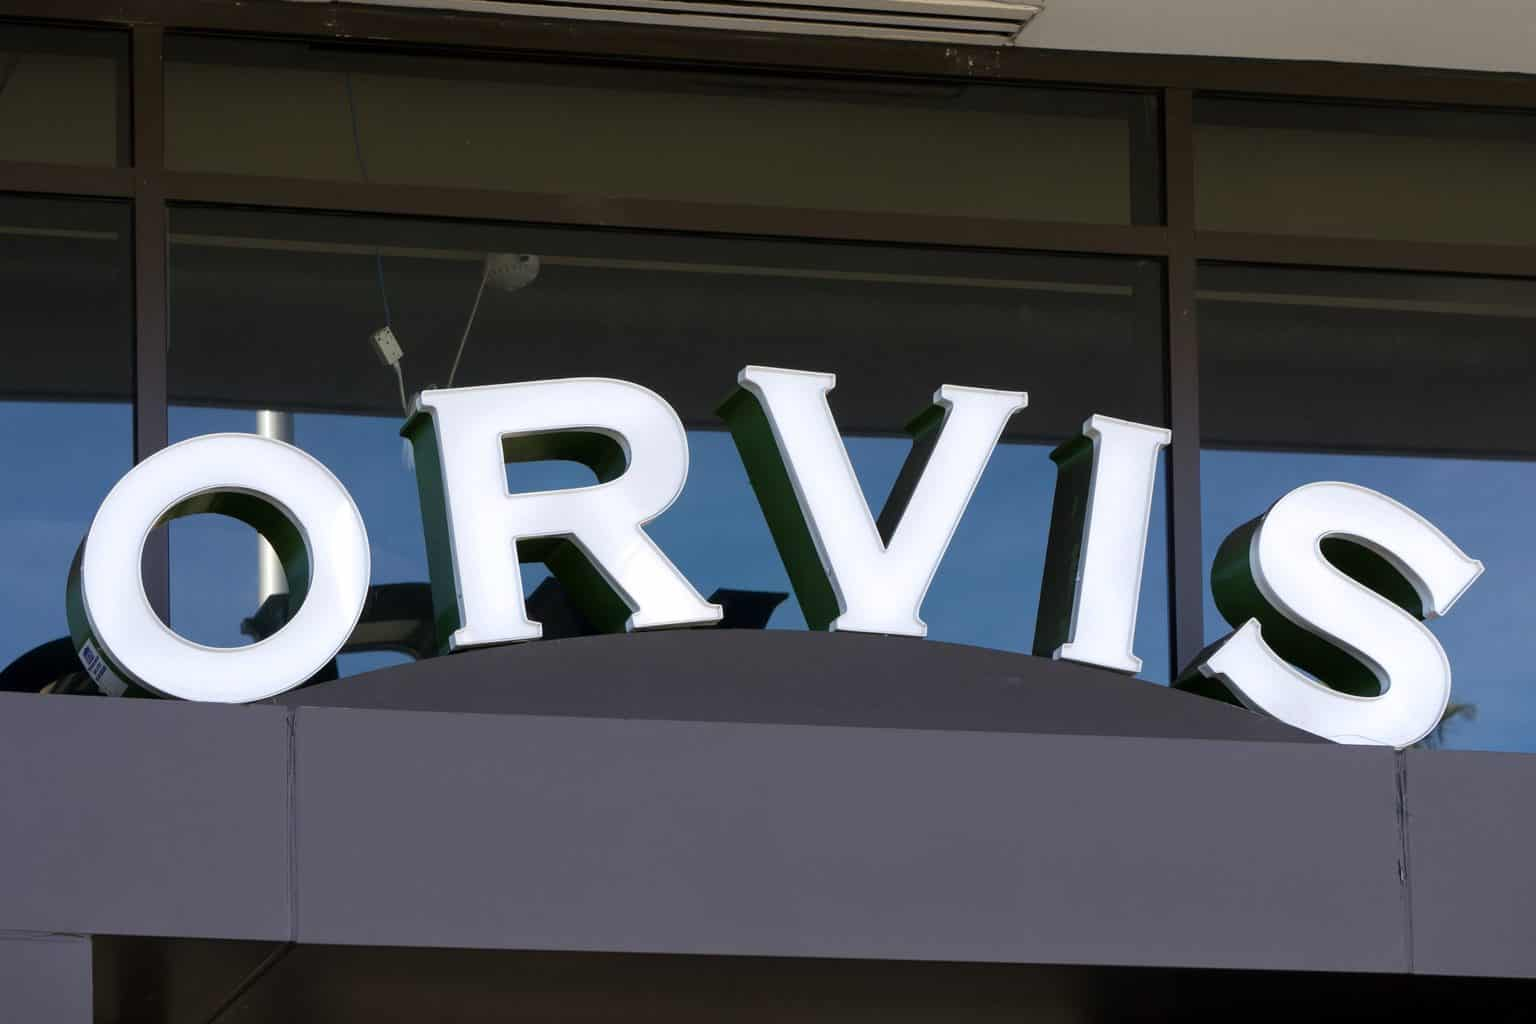 PASADEDNA: Orvis retail store exterior and logo. Orvis is a retail and mail-order business sporting goods and undoubtedly one of the best fly fishing brands in the world